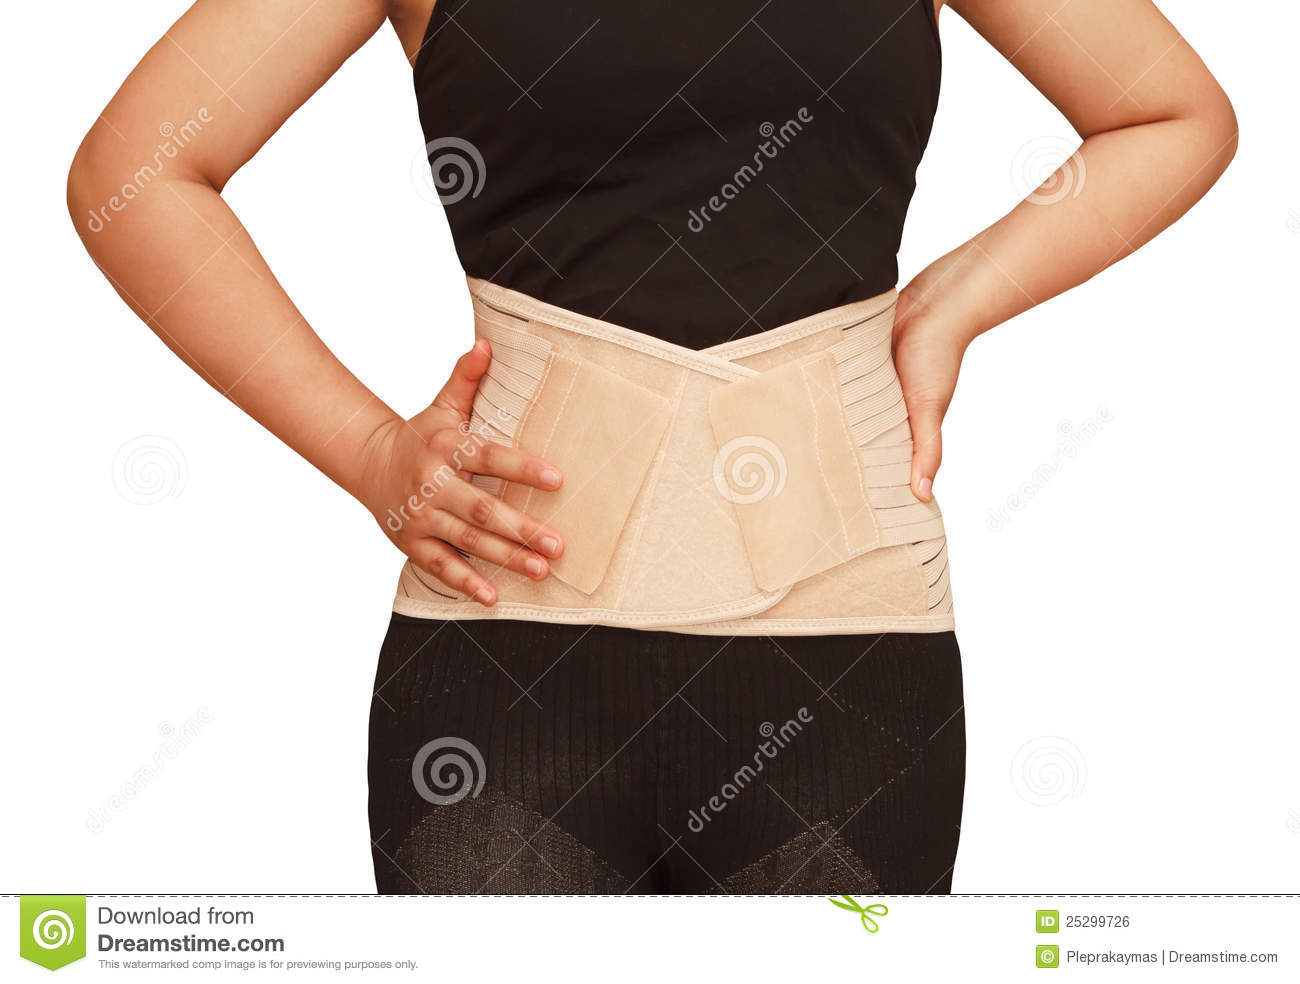 Woman wearing brace corset back support foe back strain injury